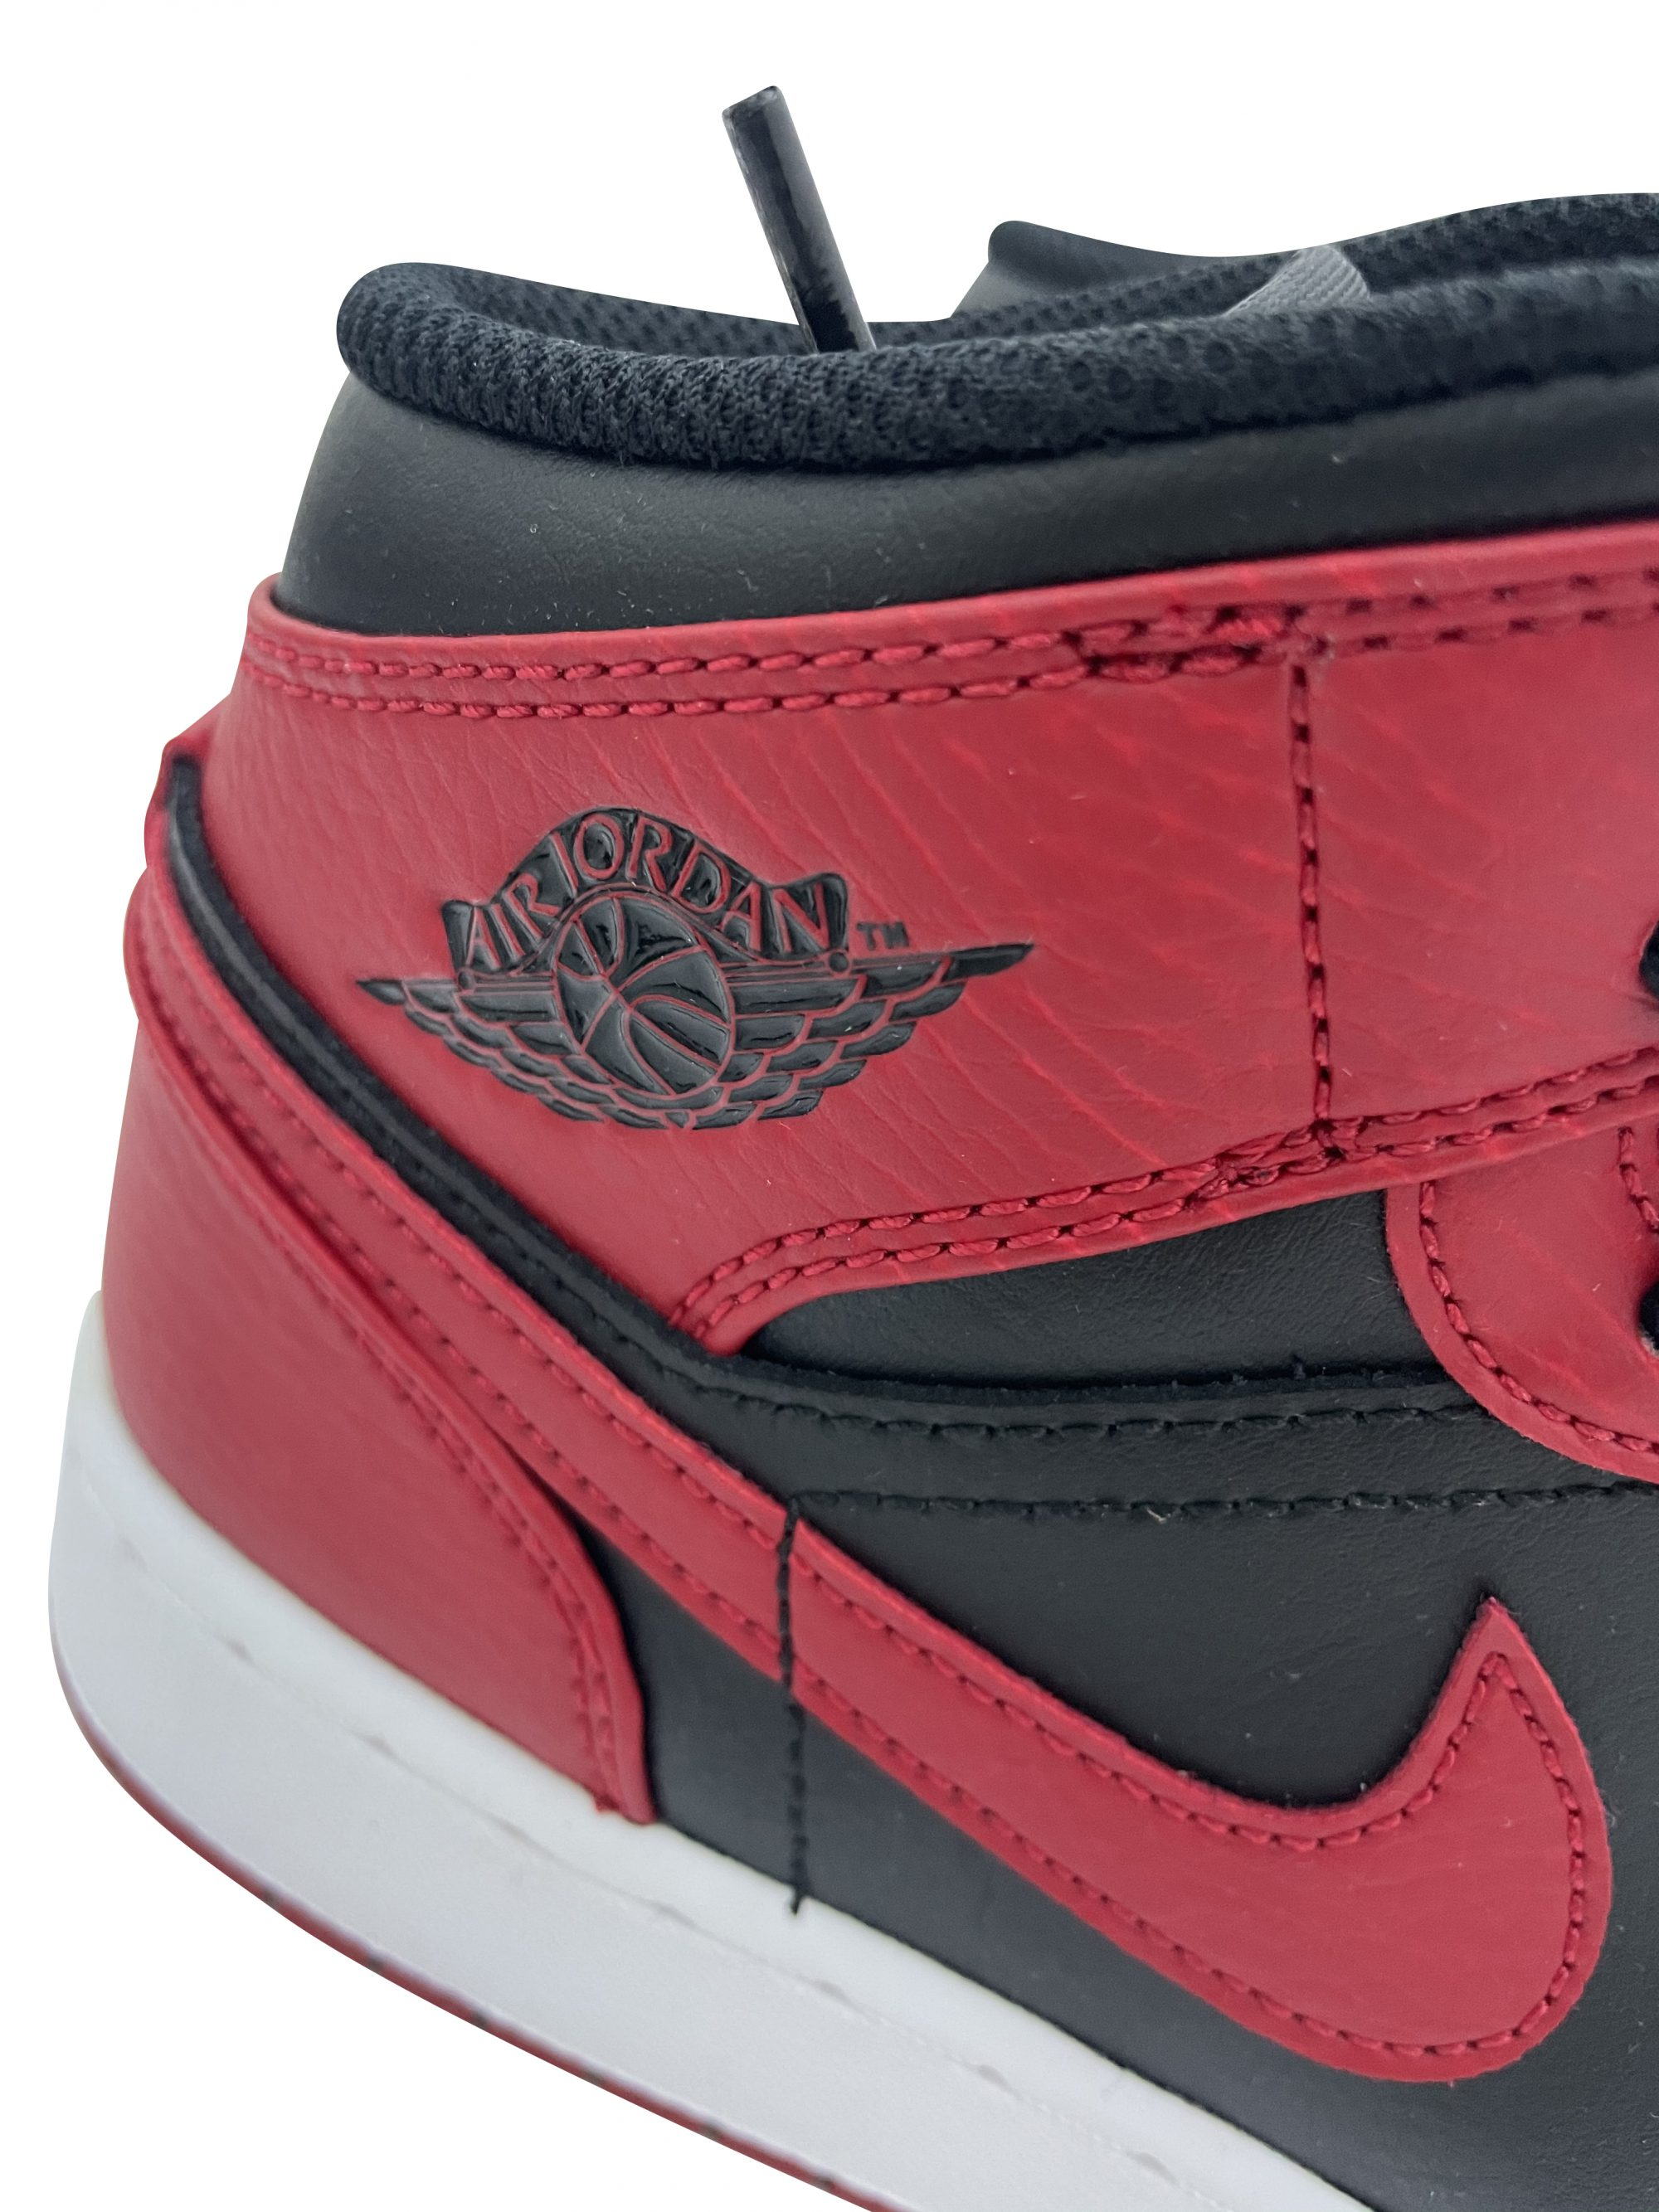 JORDAN 1 MID (GS) BANNED RED554725 074